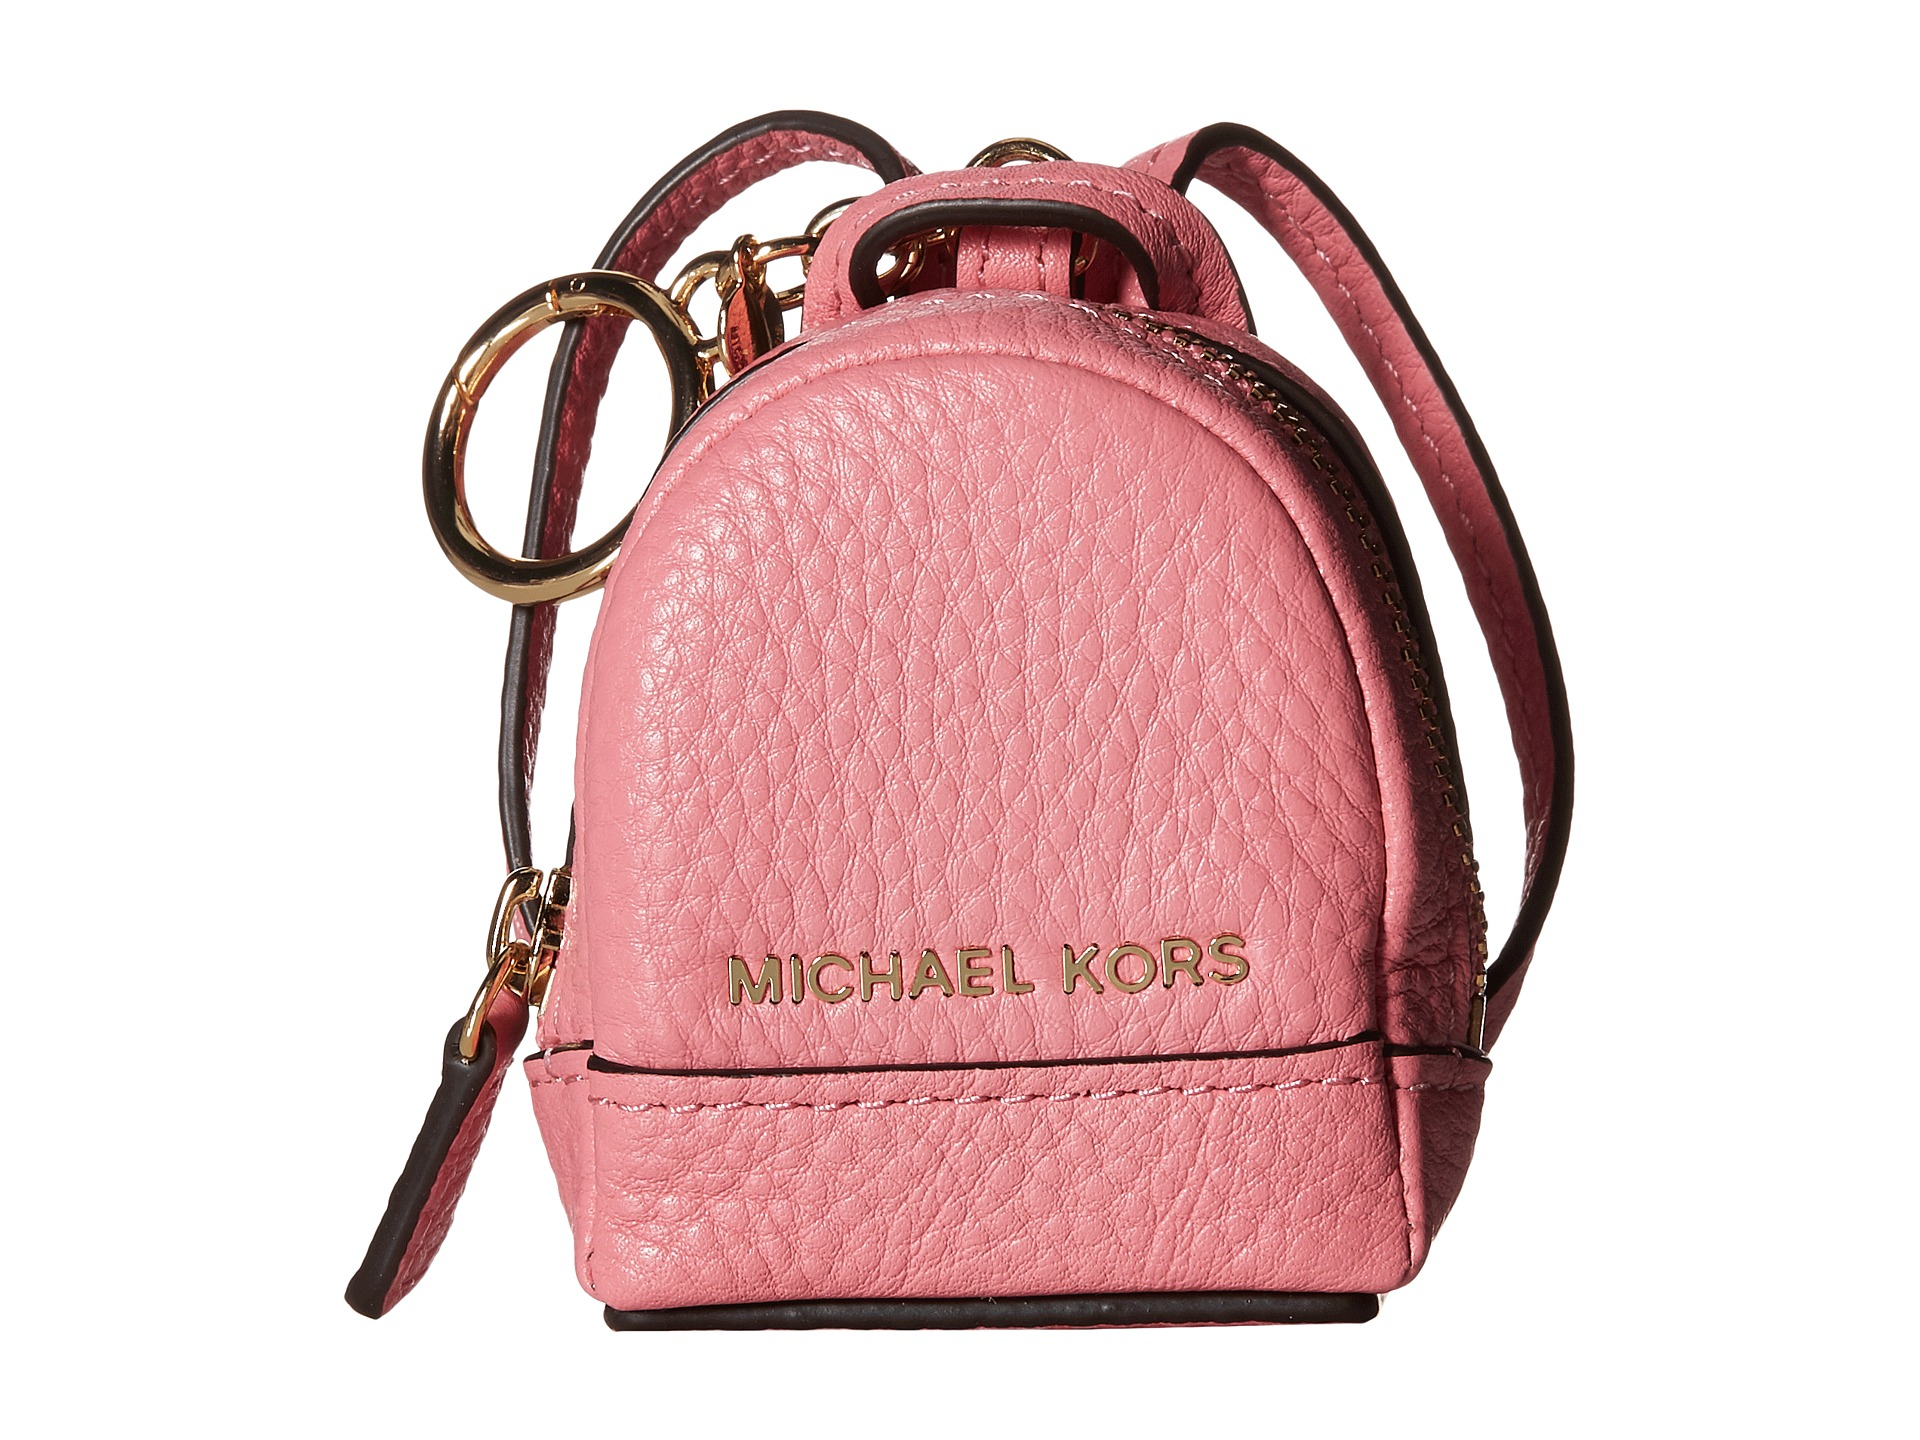 585bdd7233ef6d Gallery. Previously sold at: Zappos · Women's Michael By Michael Kors Rhea  Women's Michael Kors Charm